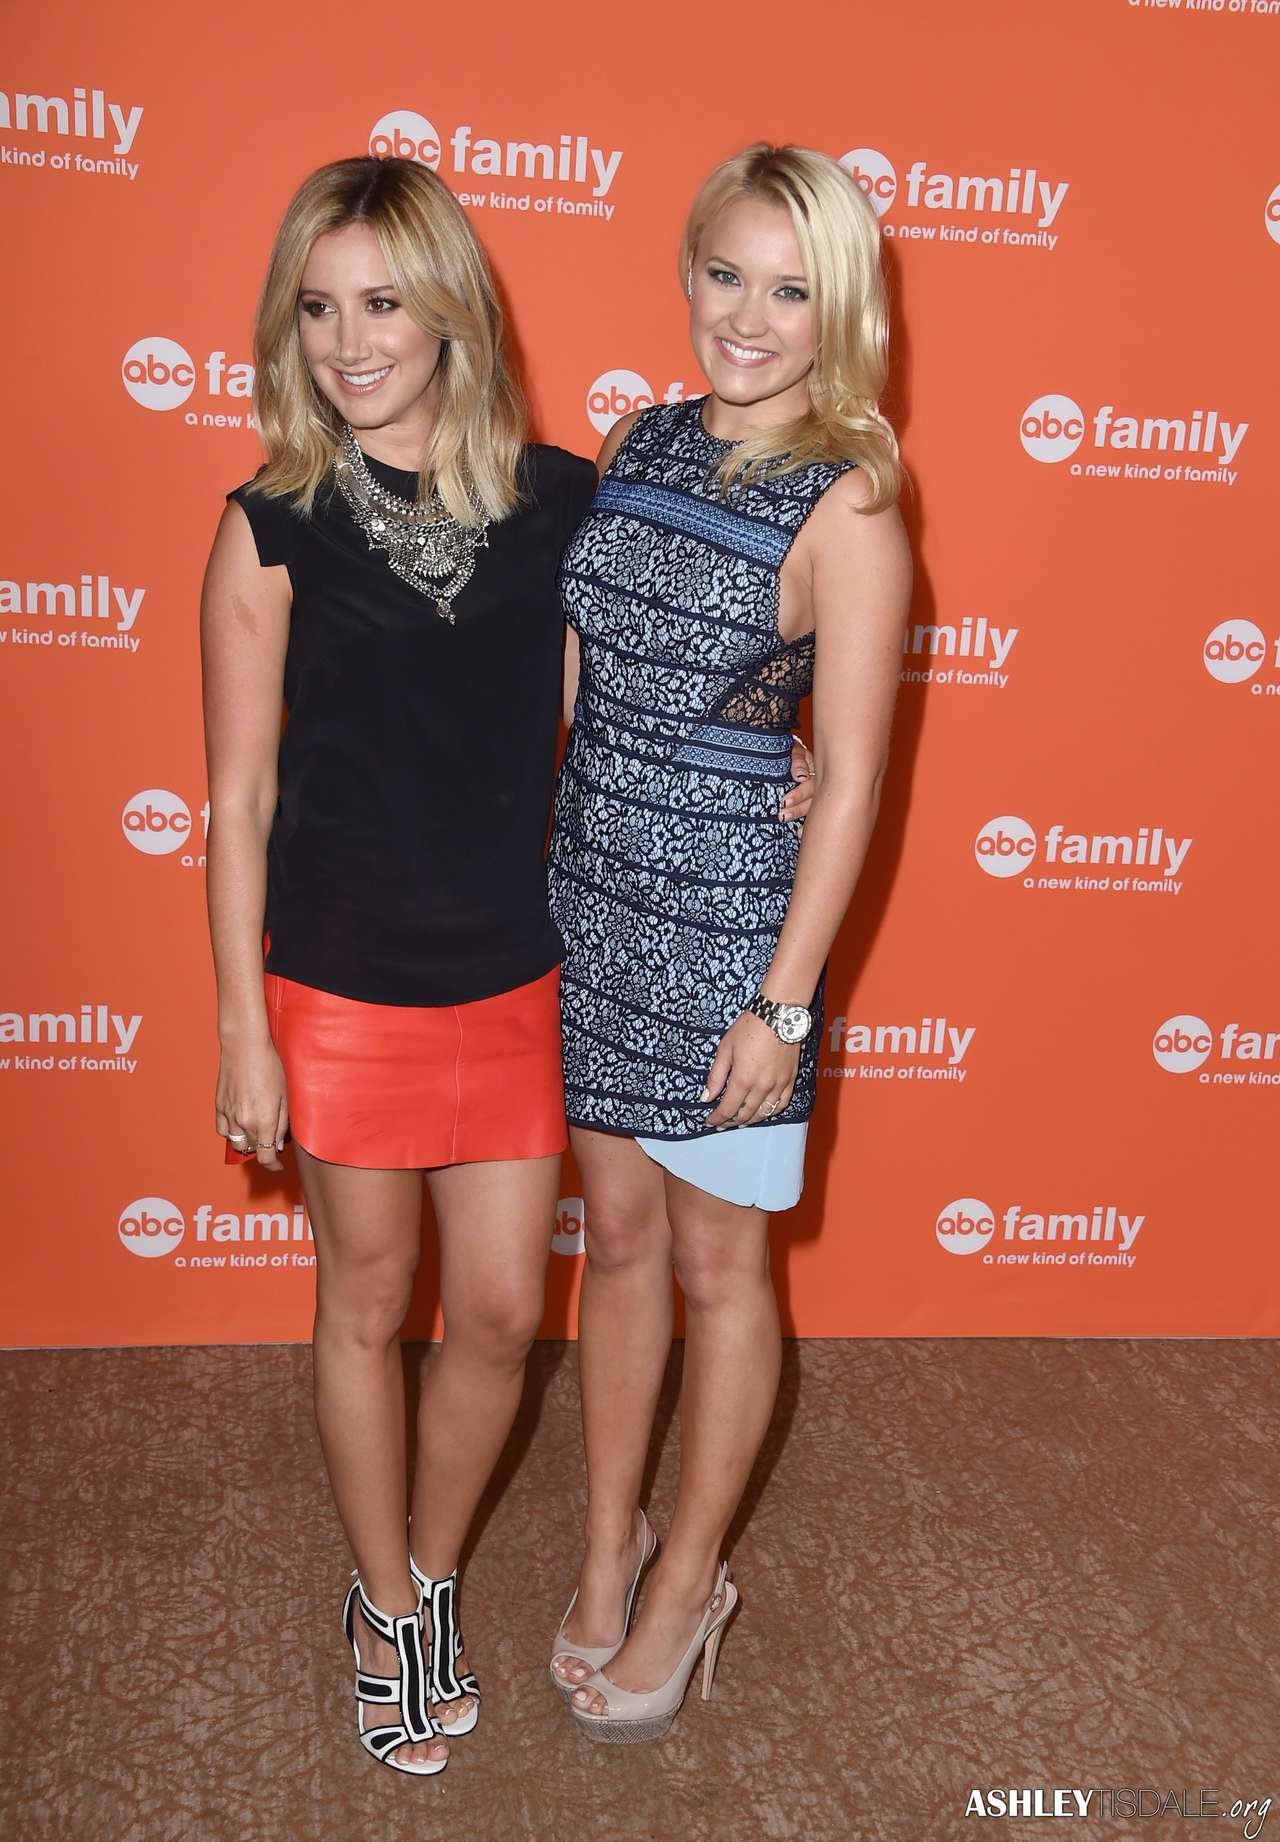 Ashley Tisdale 2014 : Ashley Tisdale at 2014 Disney ABC TCA Summer Press Tour in Beverly Hills -13